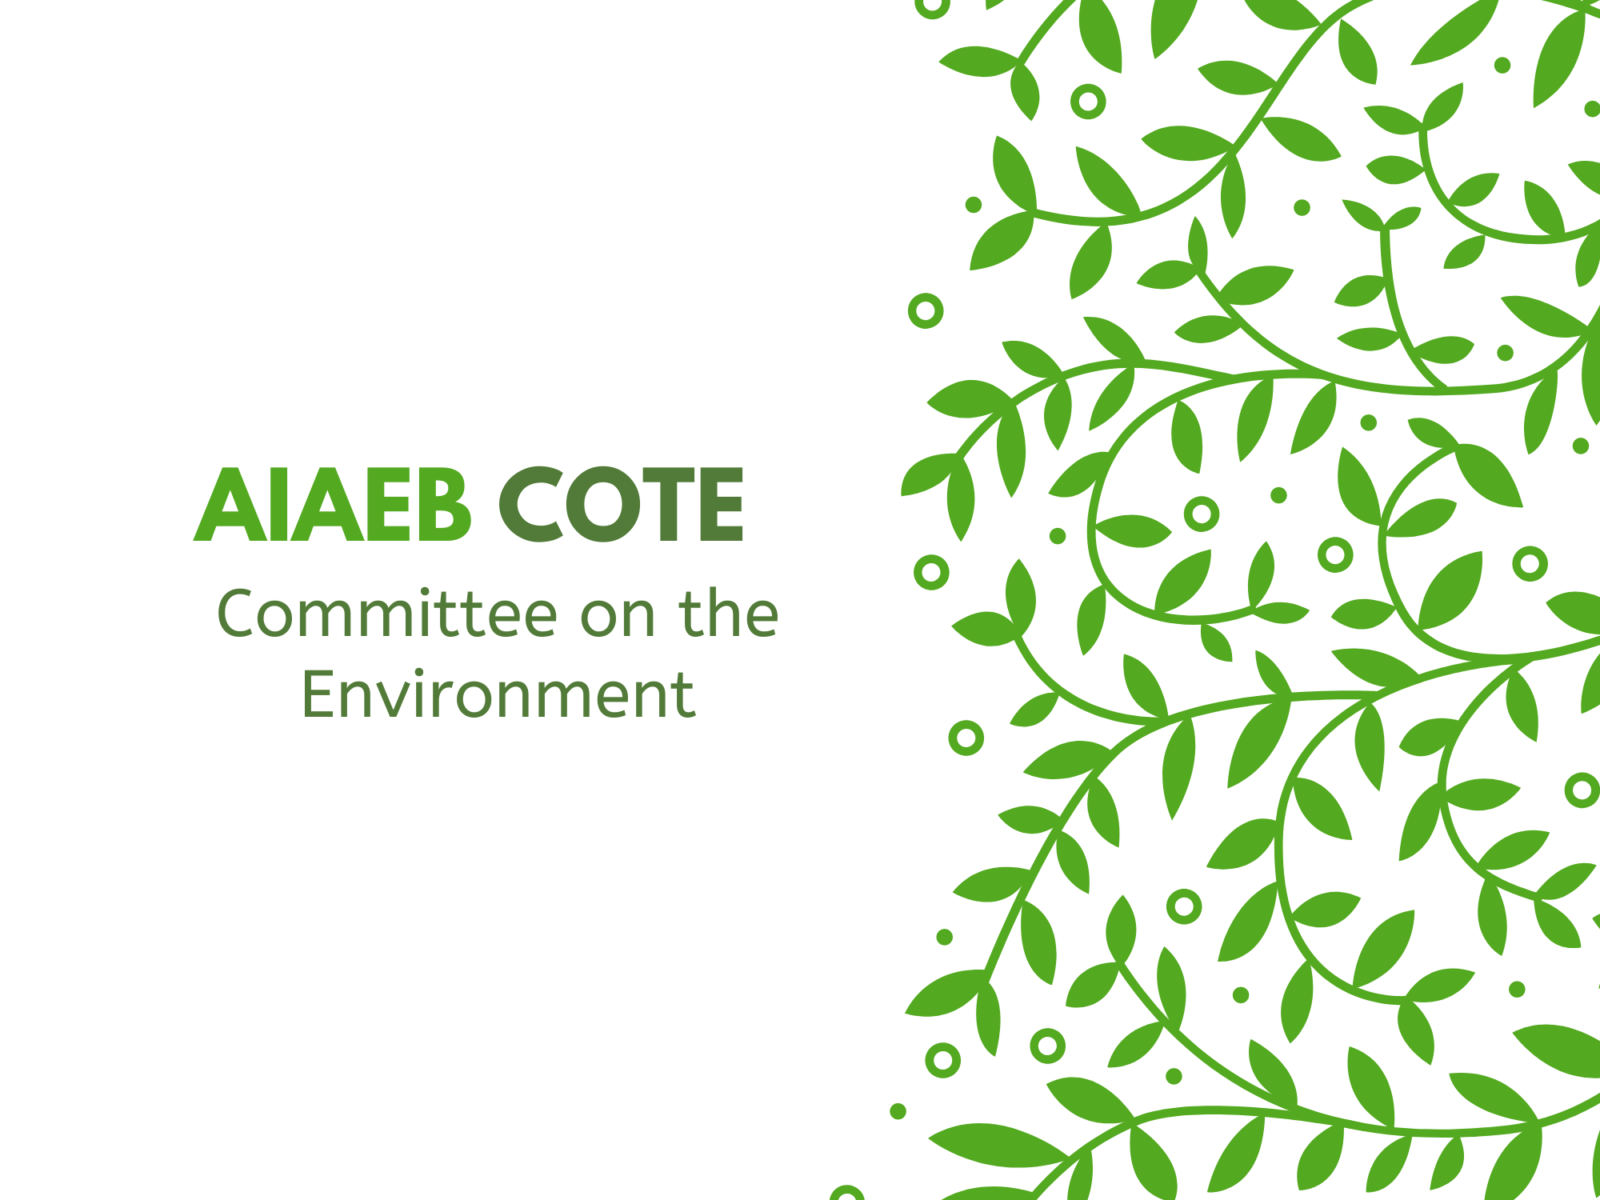 COTE - Committee on the Environment